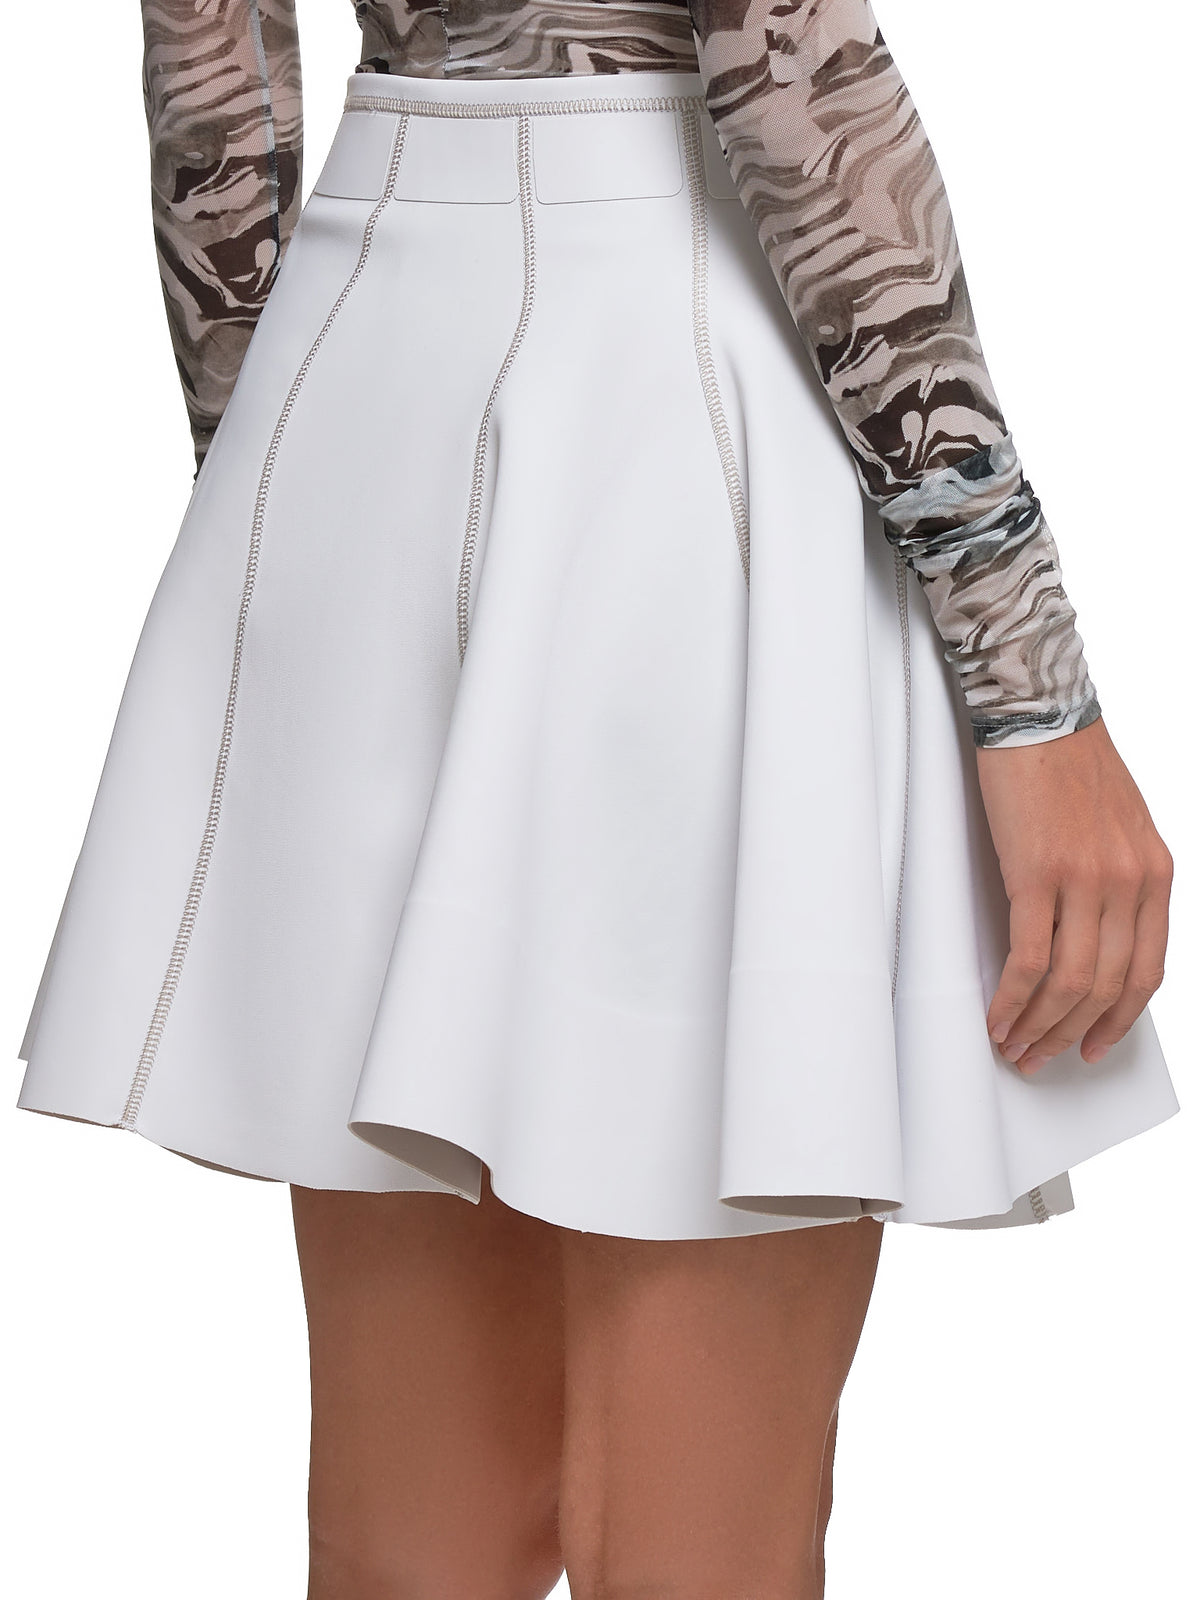 Faux Leather Skirt (19W-1-JU0458662-WHITE-BEIGE)